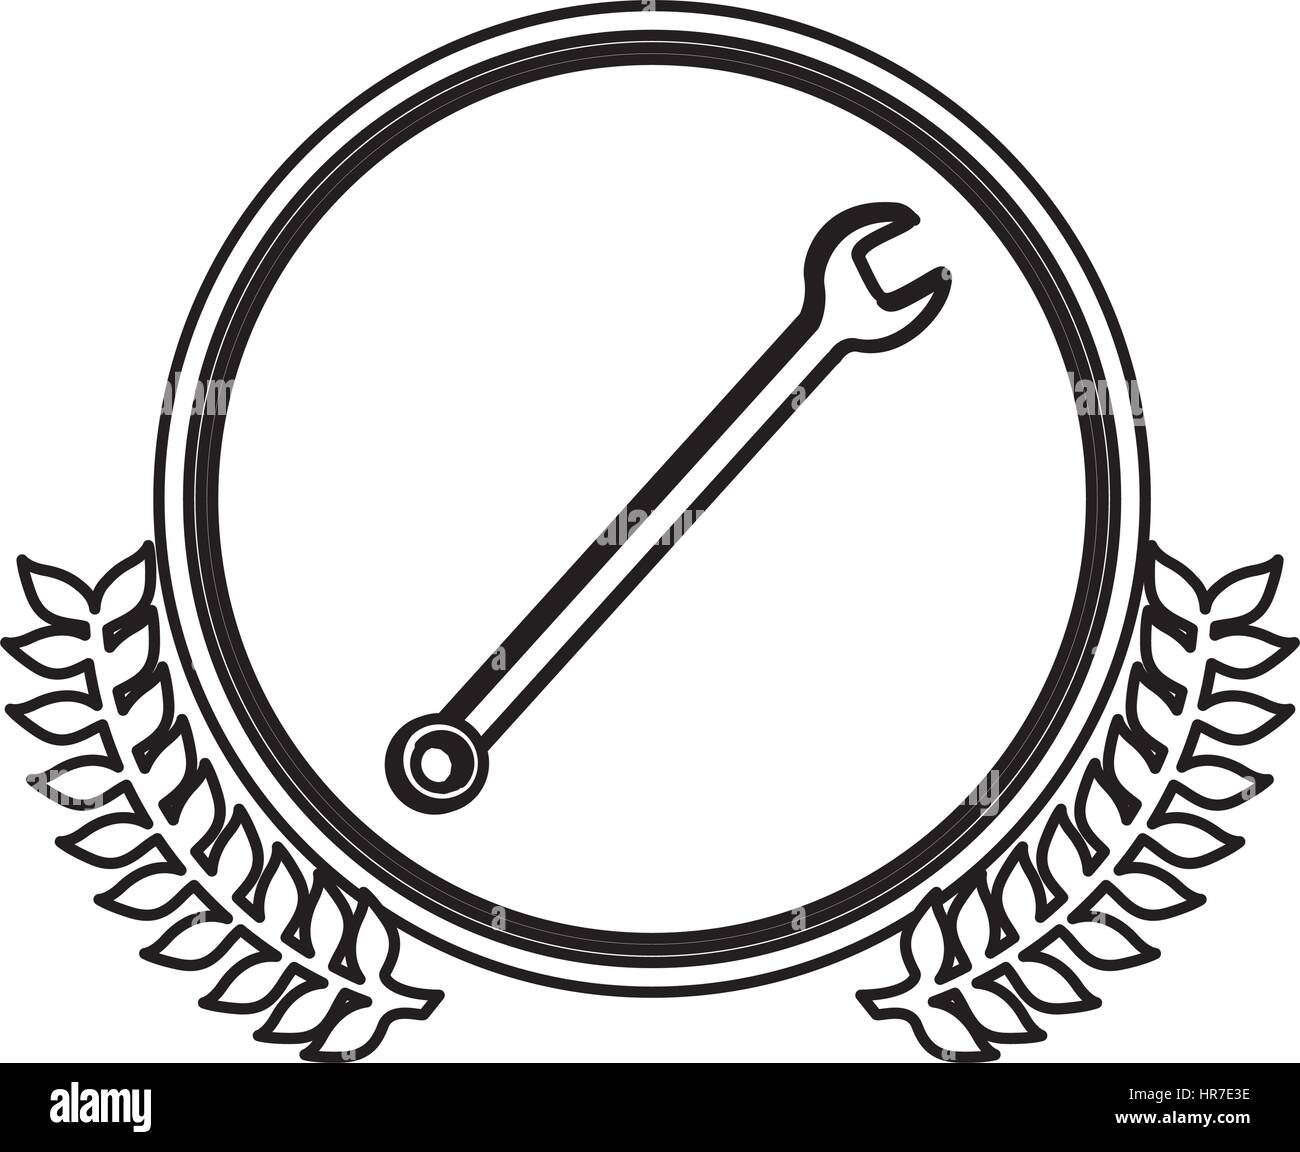 figure symbol wrench icon image - Stock Vector